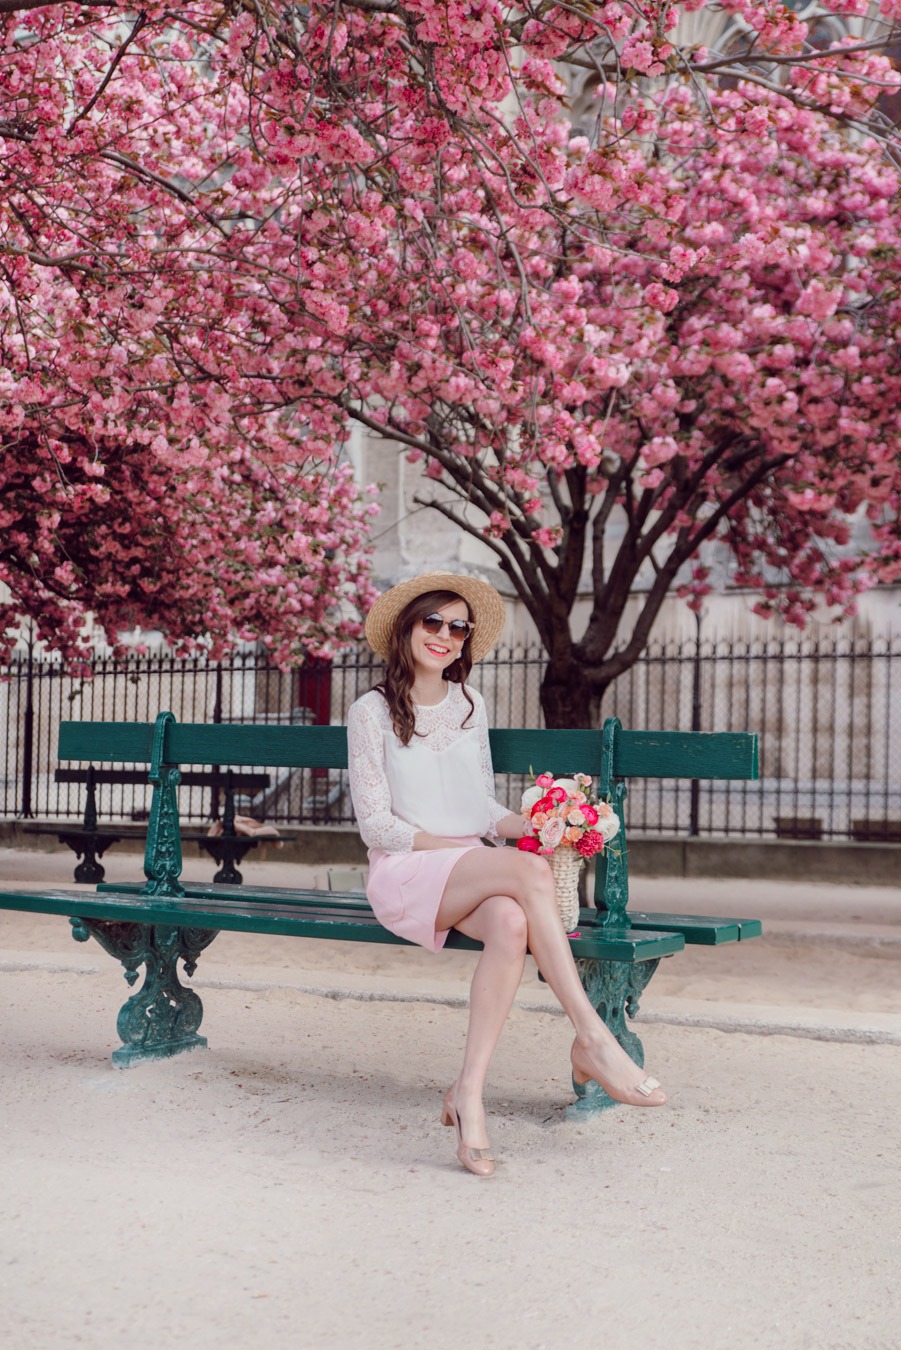 Blog-Mode-And-The-City-Looks-Notre-Dame-arbre-en-fleurs-10